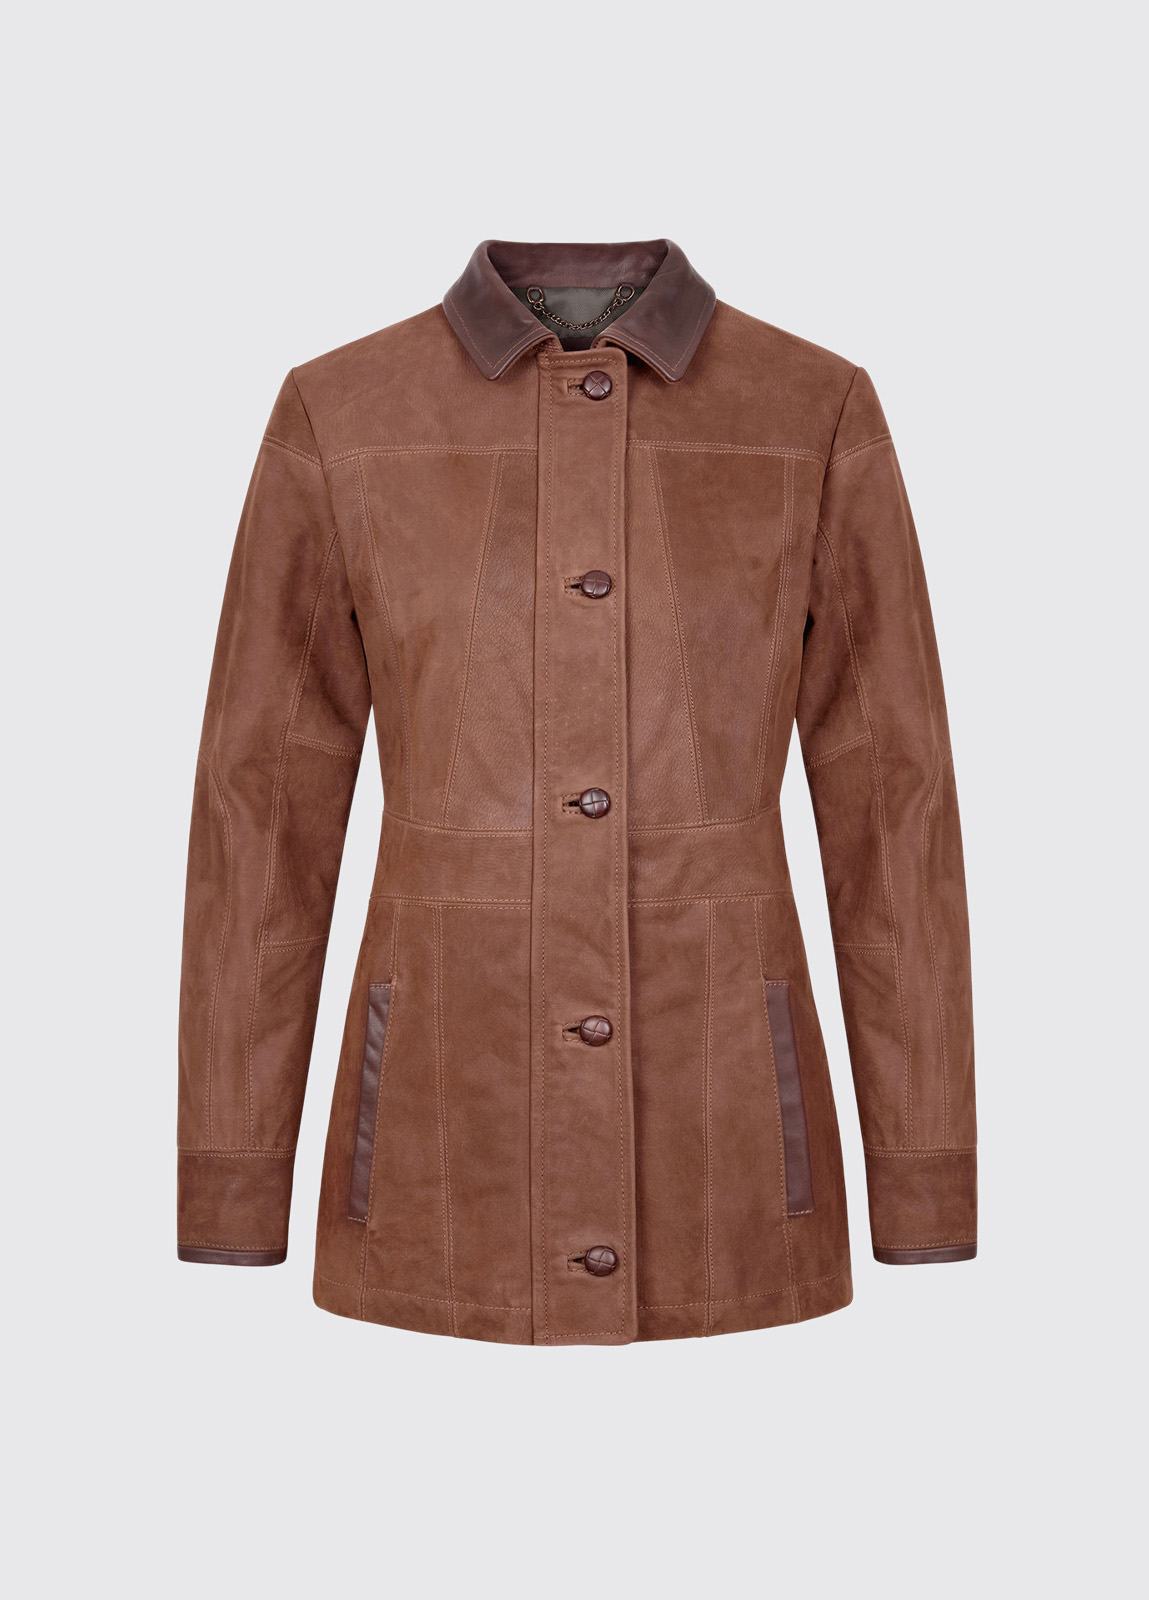 Goldsmith Ladies Leather Jacket - Walnut